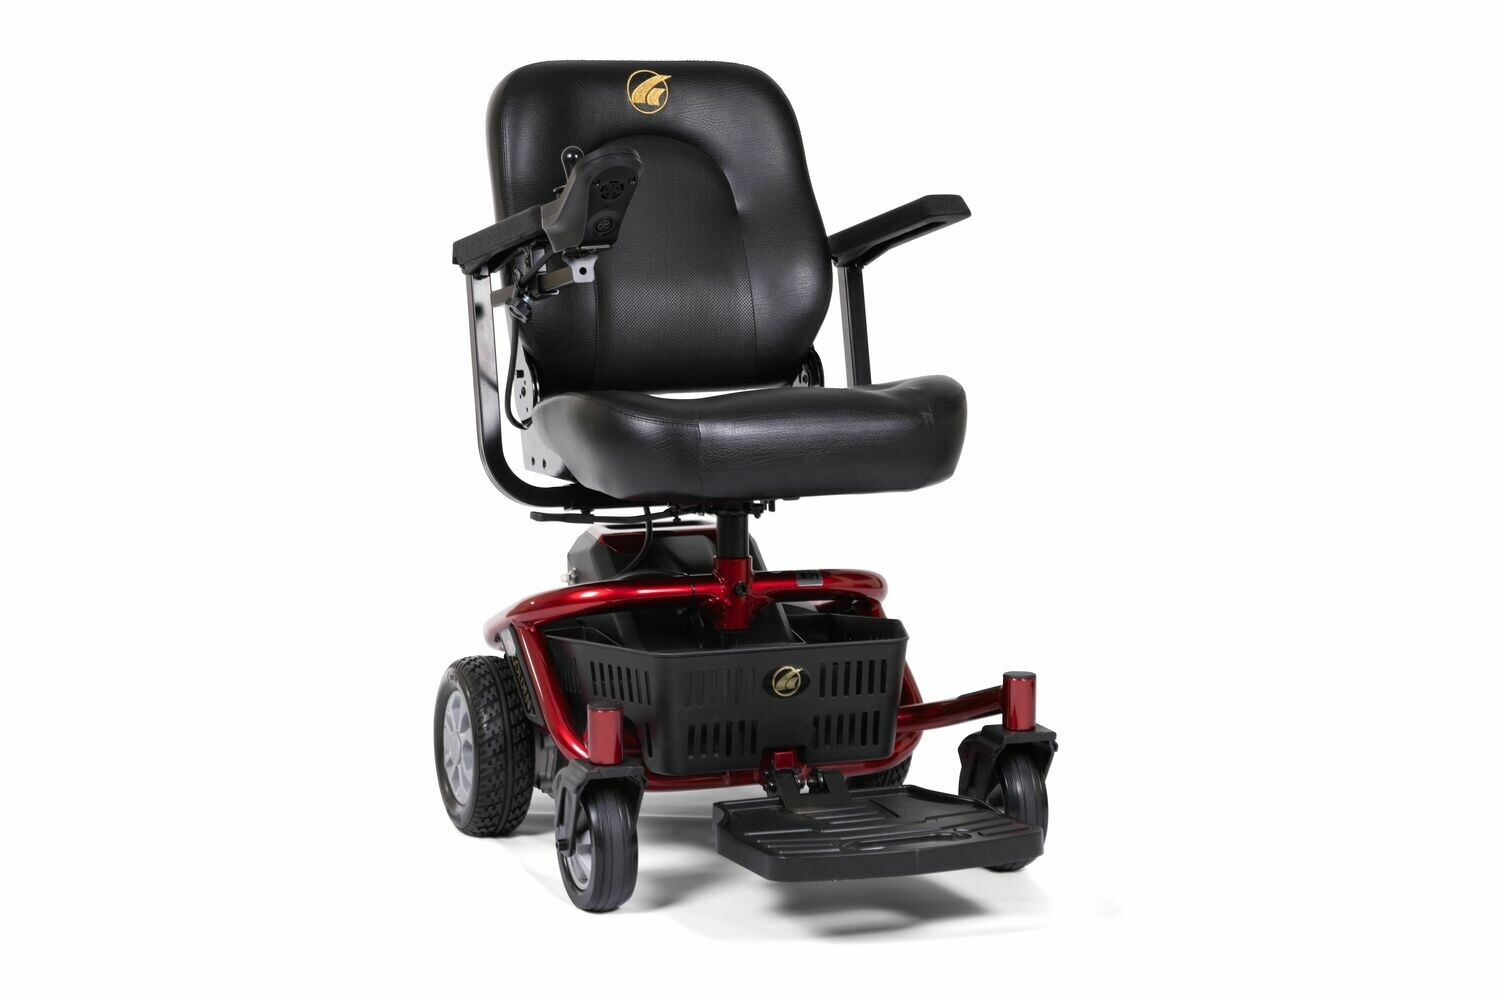 Golden GP-162 Power Chair